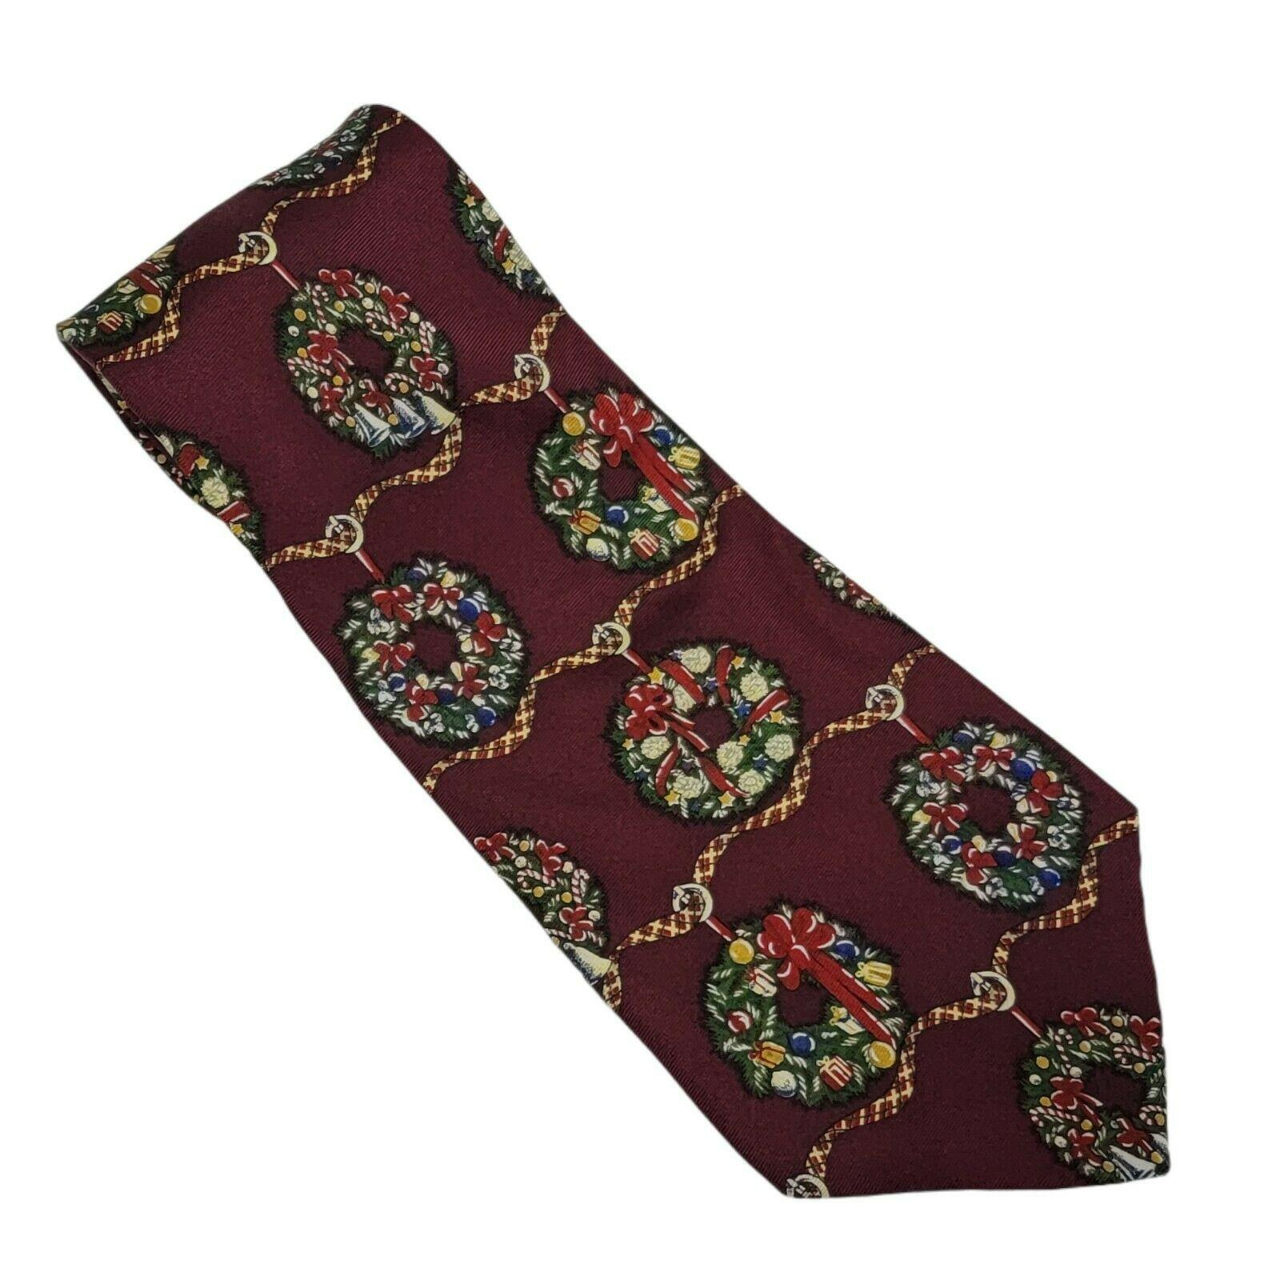 Product Image 1 - Brand: American Traditions Item: Silk Neck